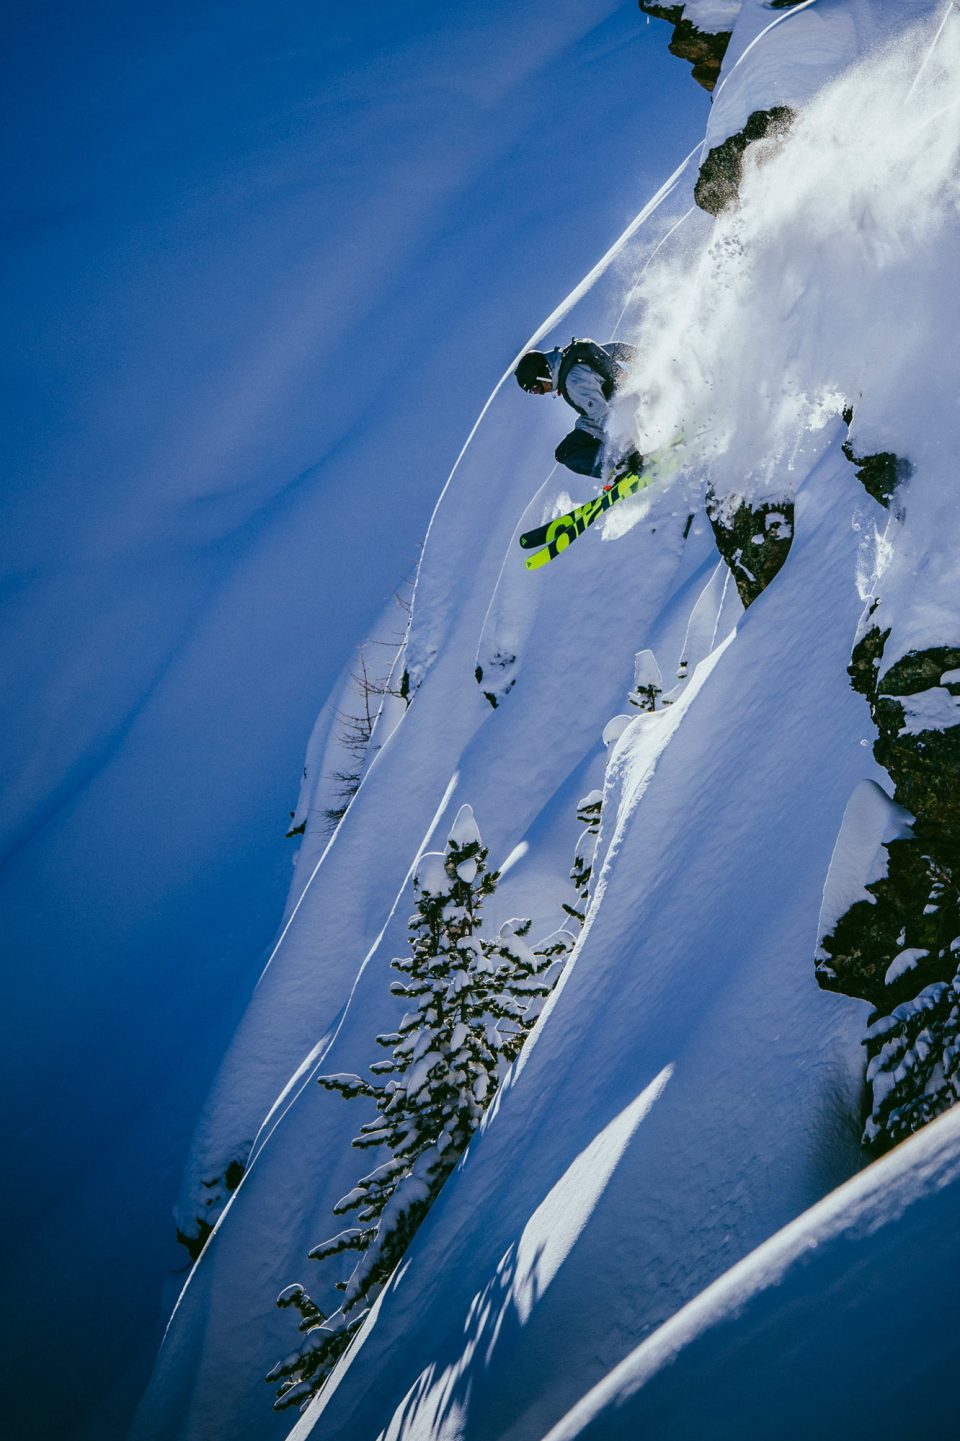 photo: ARMIN WALCHER. skis: atris